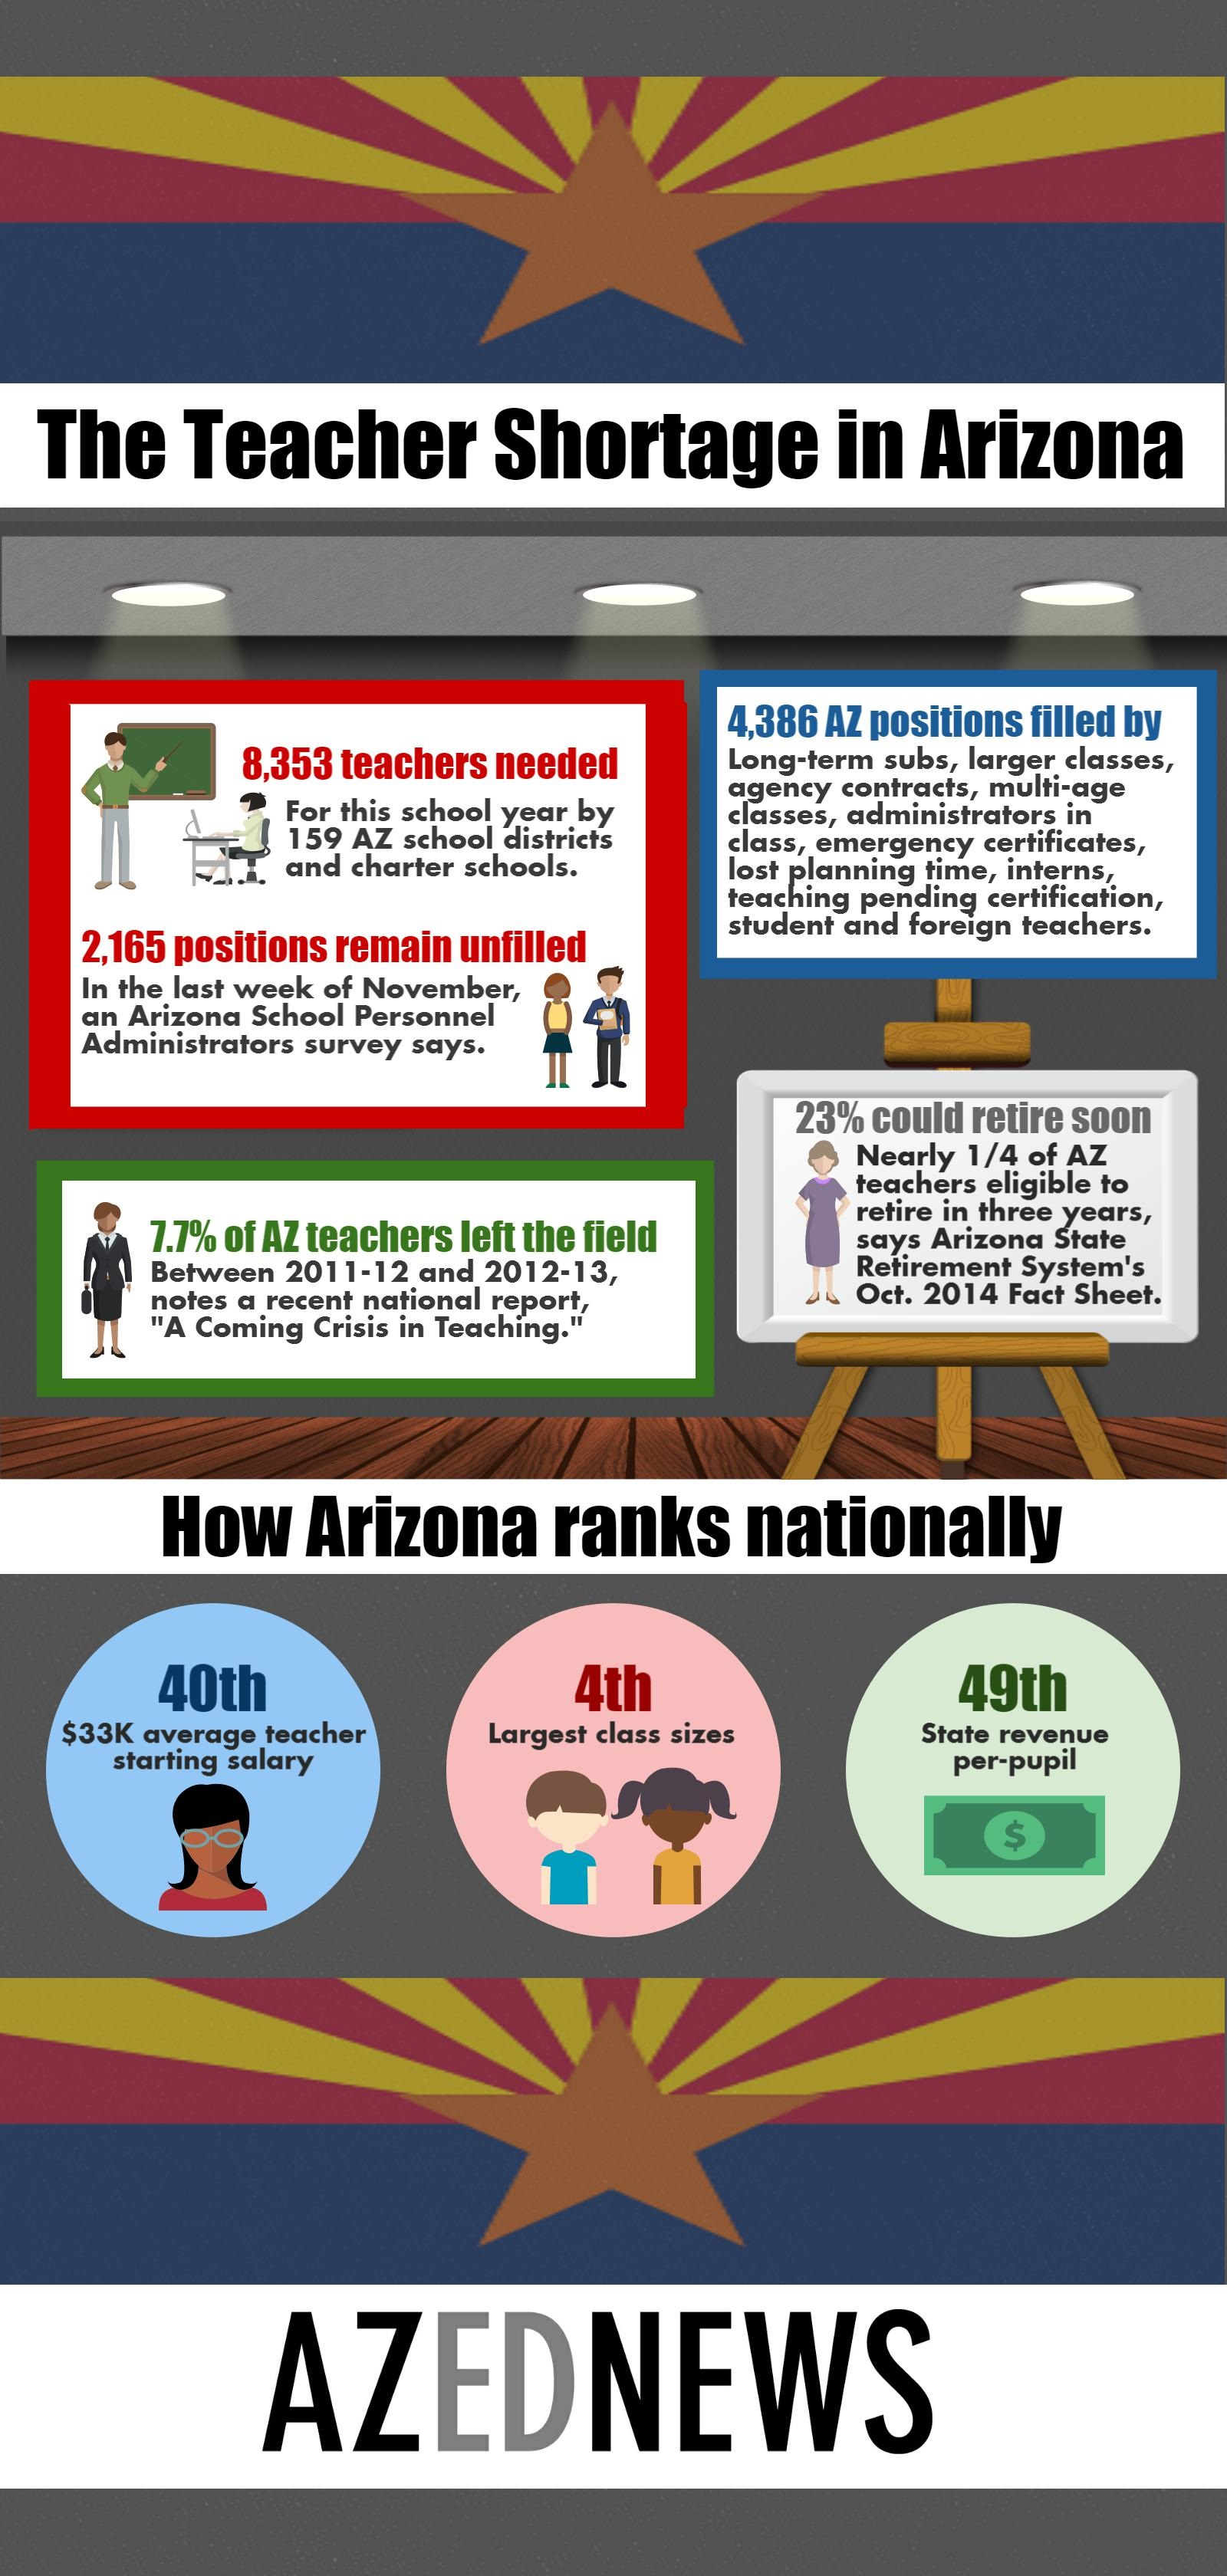 New data shows teacher shortage in Arizona has worsened AZEdNewsArizonaTeacherShortageInfoGraphic